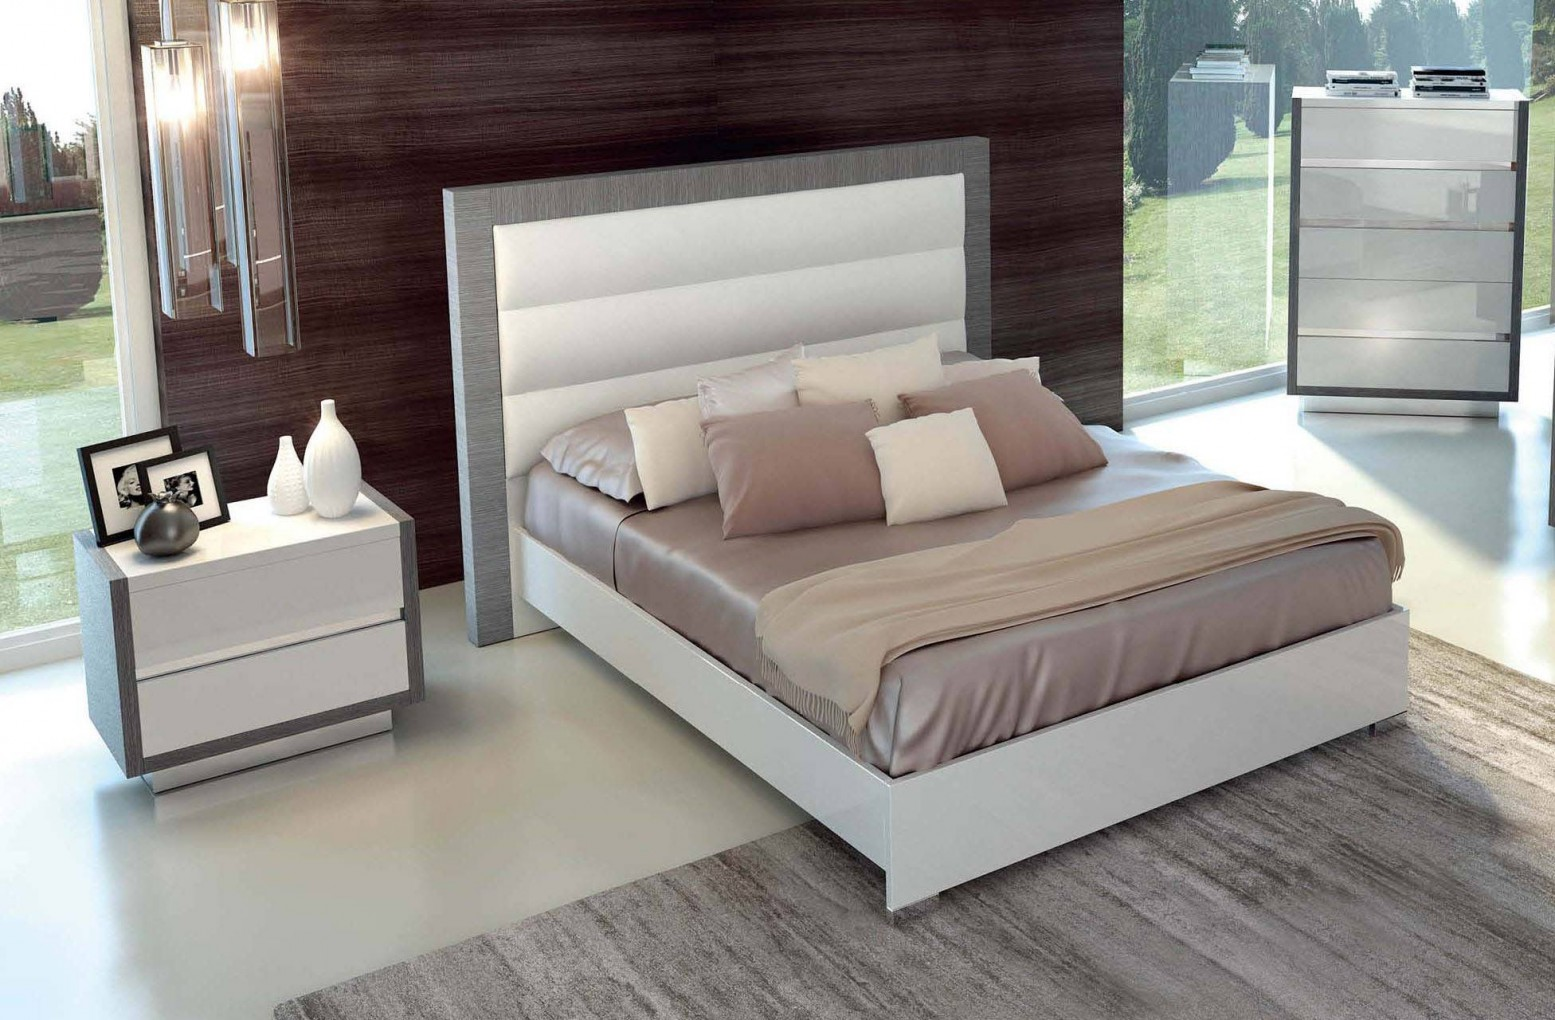 Mangano King Size Bed W Wooden Slats Frame Buy Online At Best Price